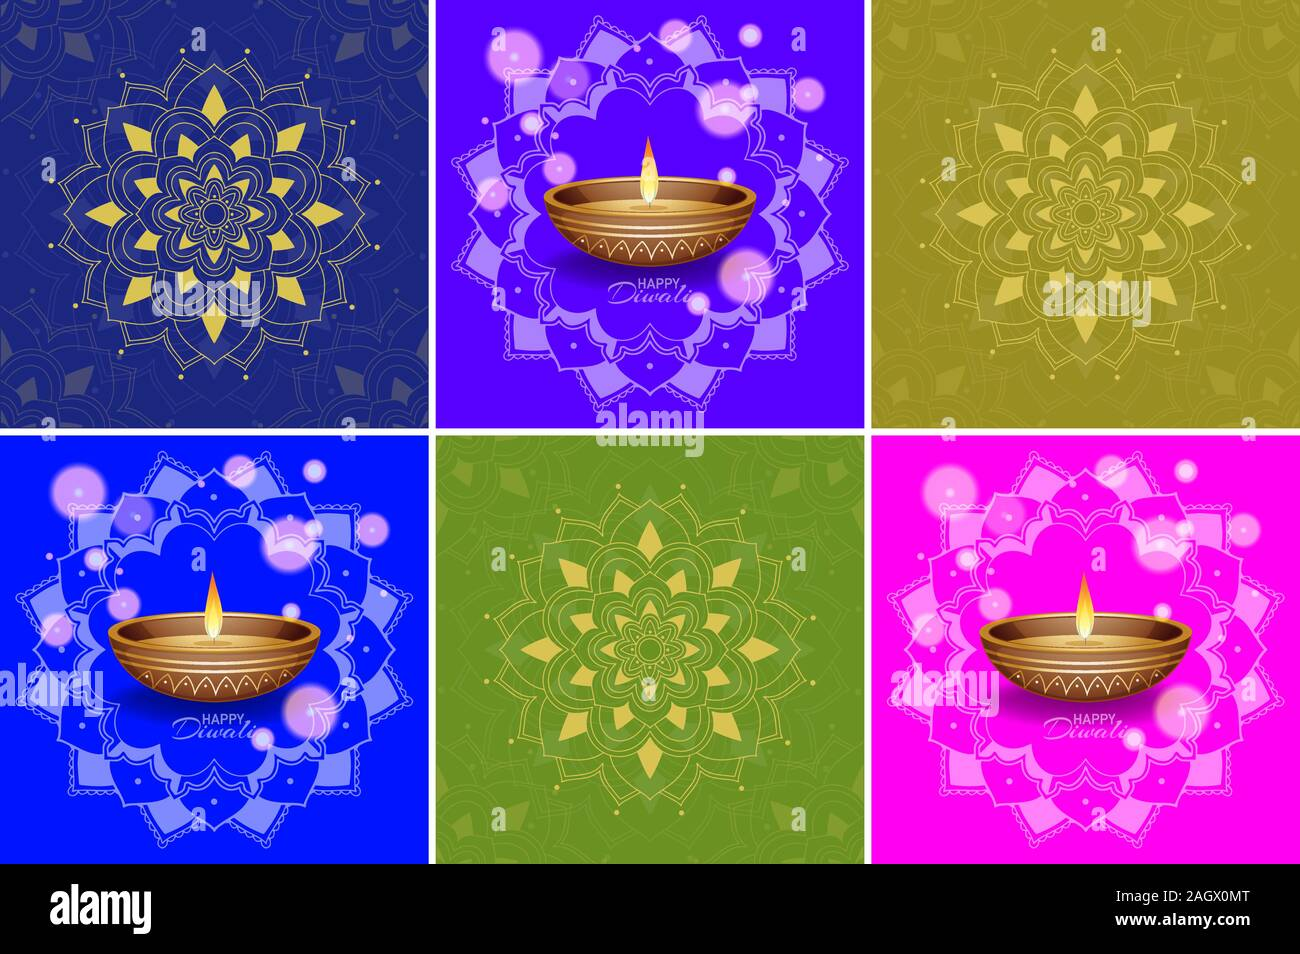 Background Template With Mandala Designs Illustration Stock Vector Image Art Alamy